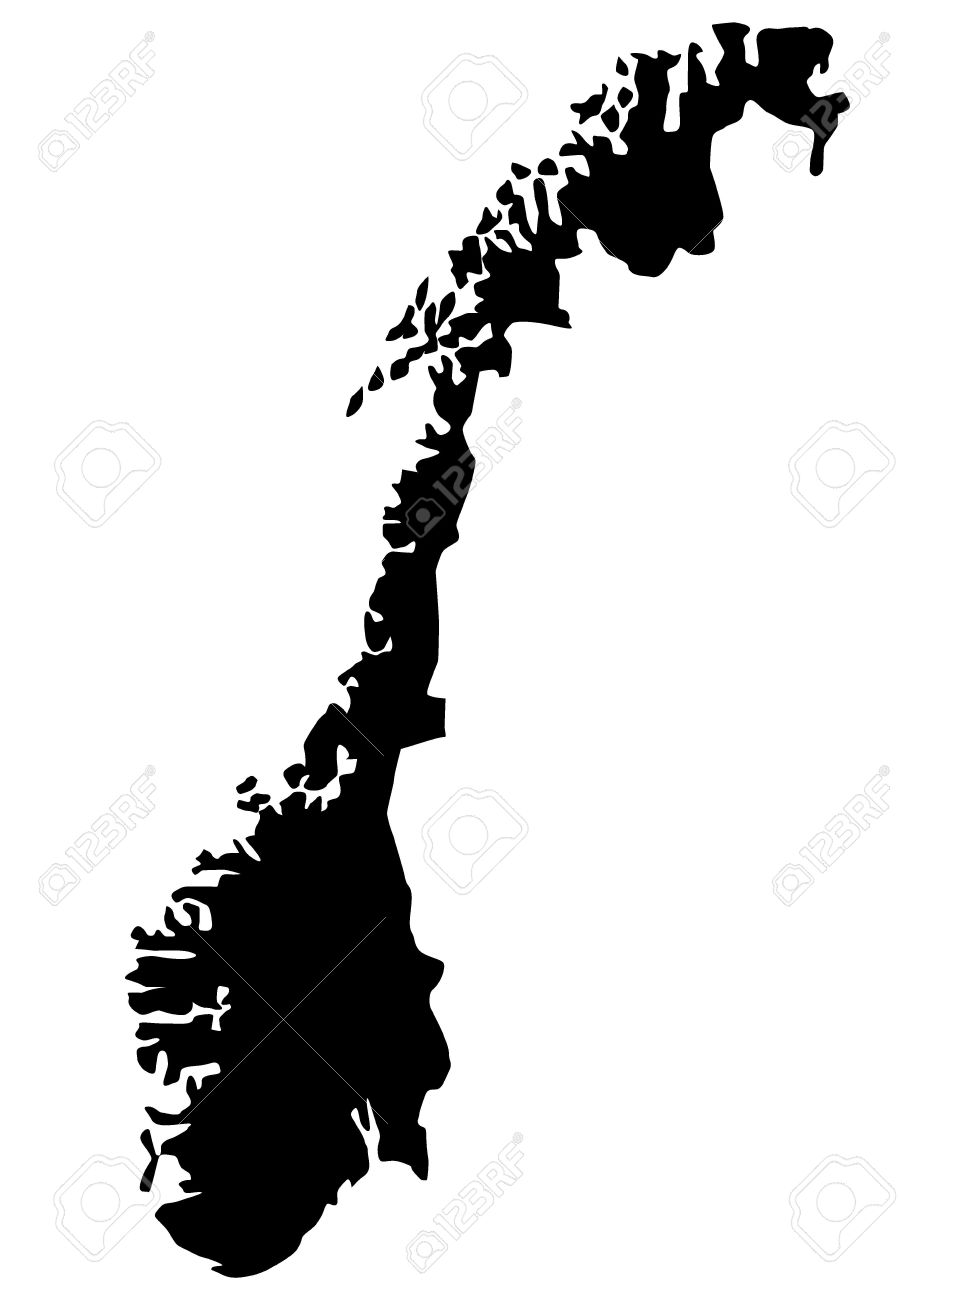 Vector Illustration Of Maps Of Norway Royalty Free Cliparts - Norway map clipart